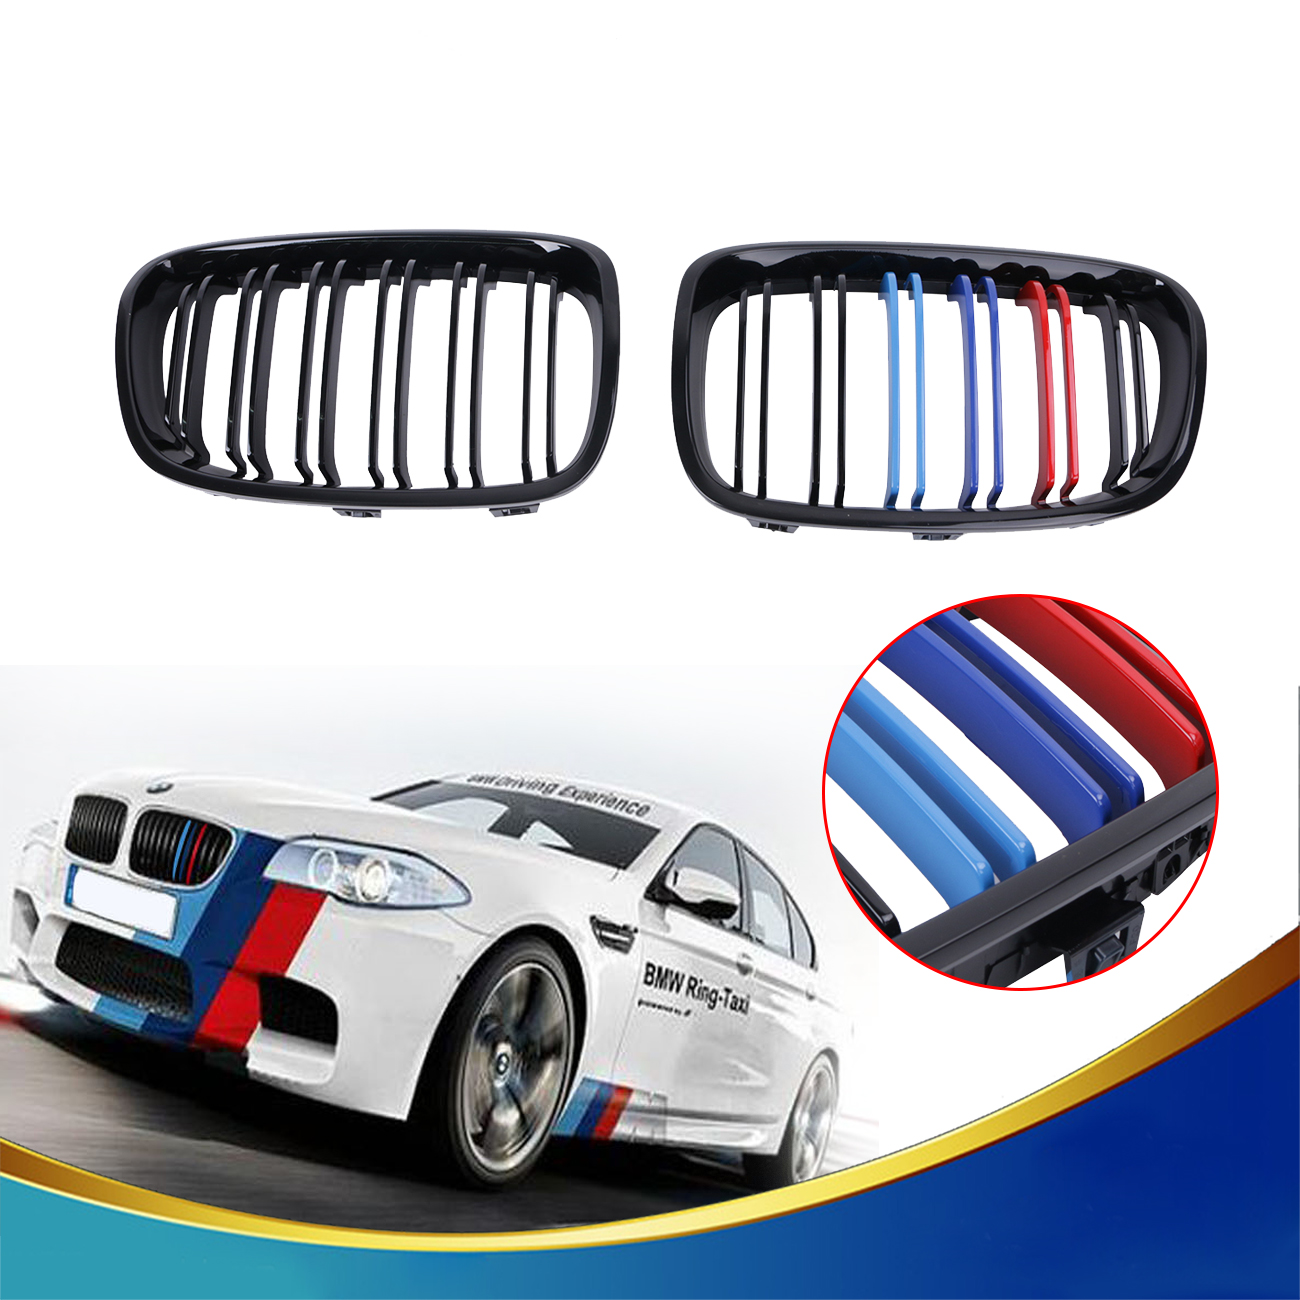 M-Color Double Line Front Grille Kidney Grills For BMW F20 F21 M Sport 118i 120i 125i 2010-2014 Glossy Black Car Styling #P457 2016 new a pair front grilles left and right double line grille gloss black front grills for bmw 3 series e46 2002 2004 4 door